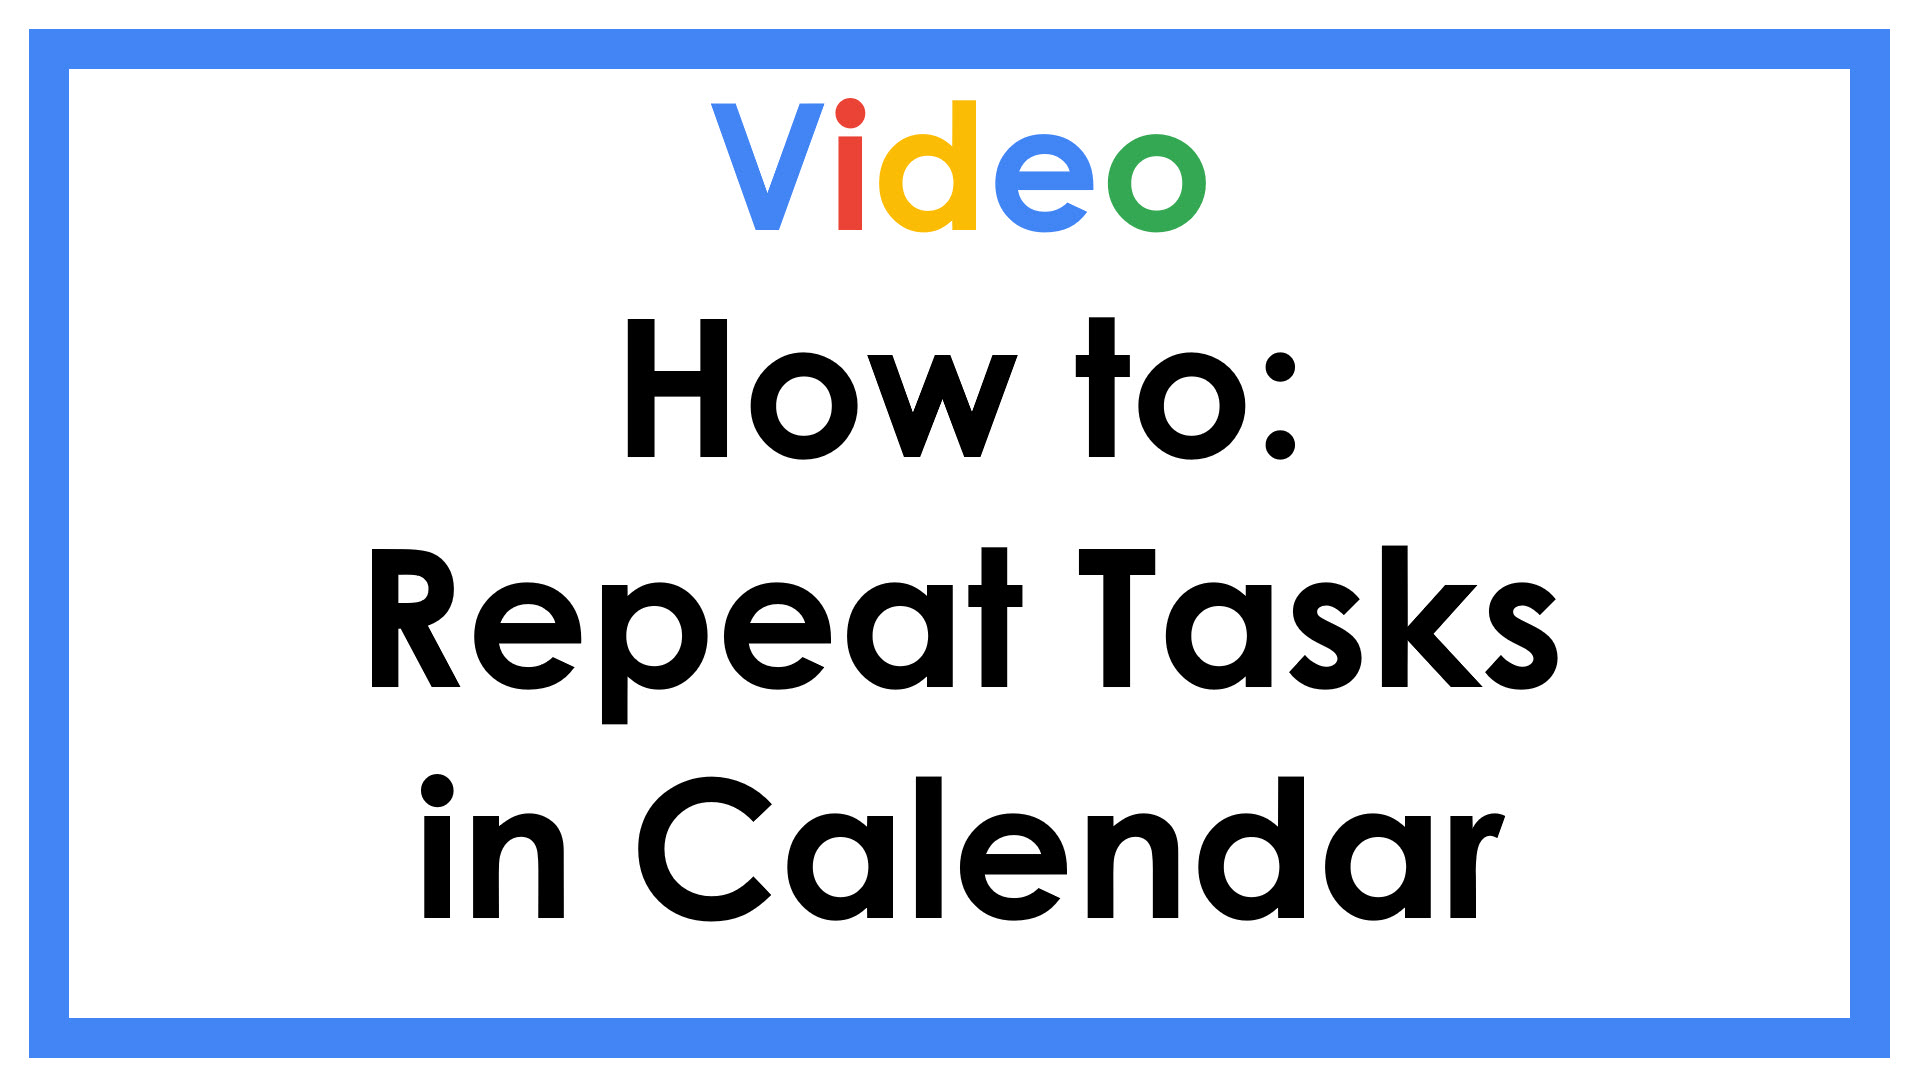 How to Repeat Tasks in Calendar